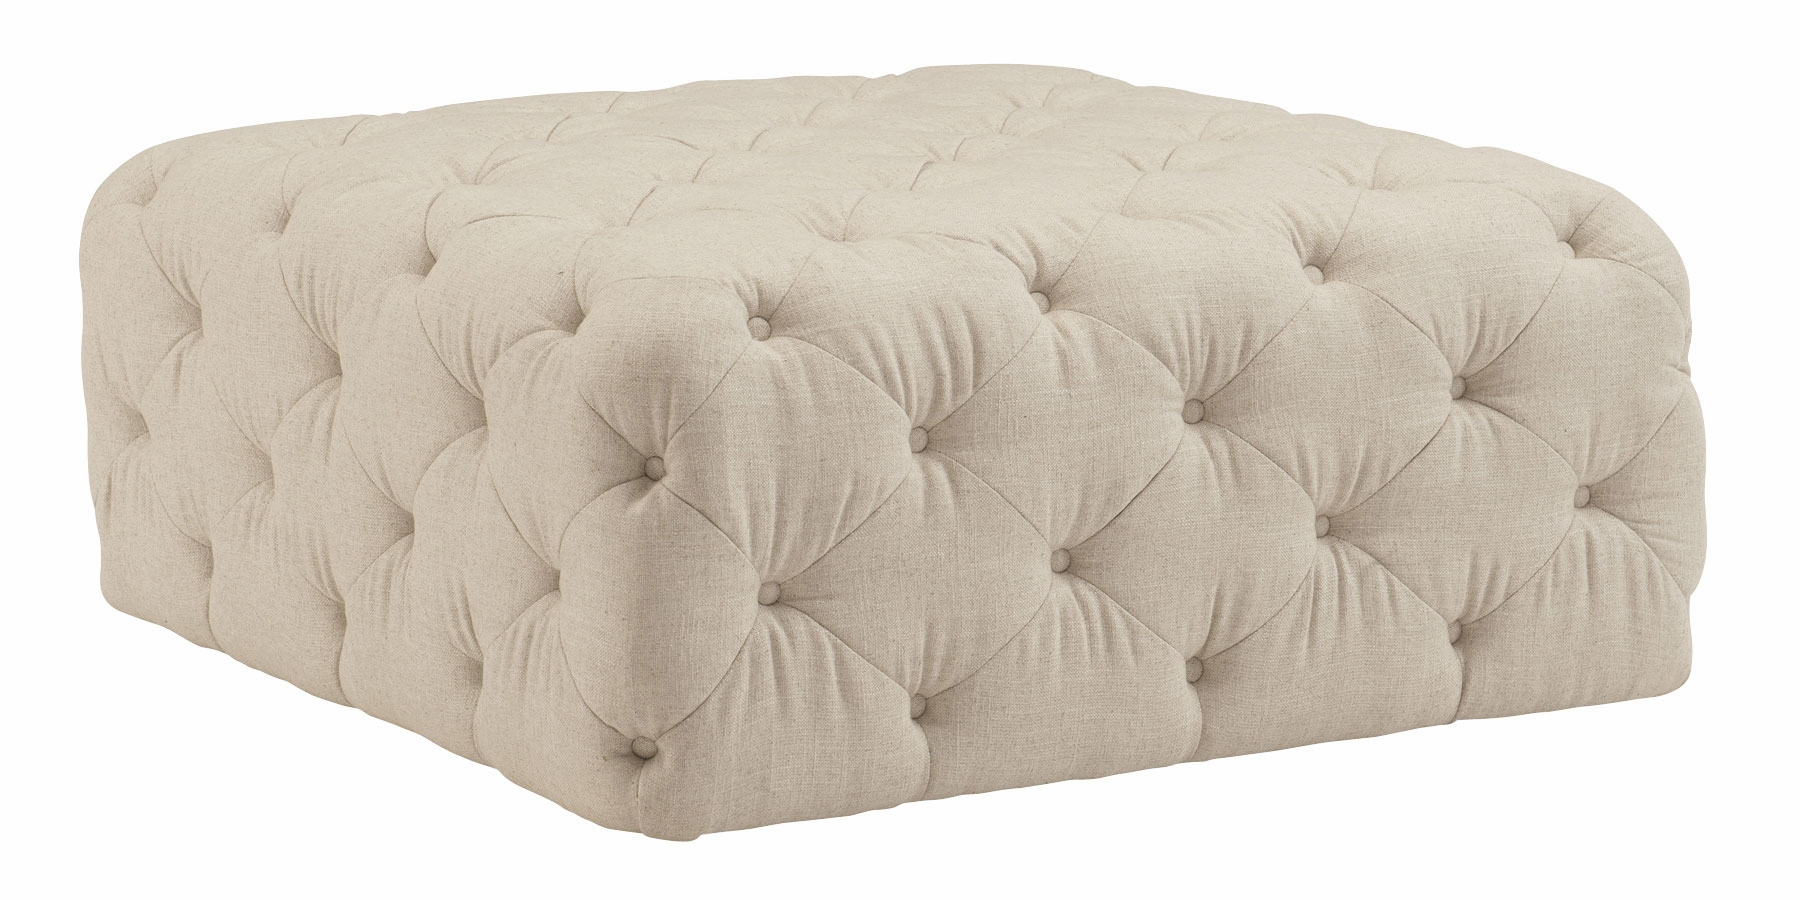 Rhea Quick Ship Large Square Tufted Ottoman